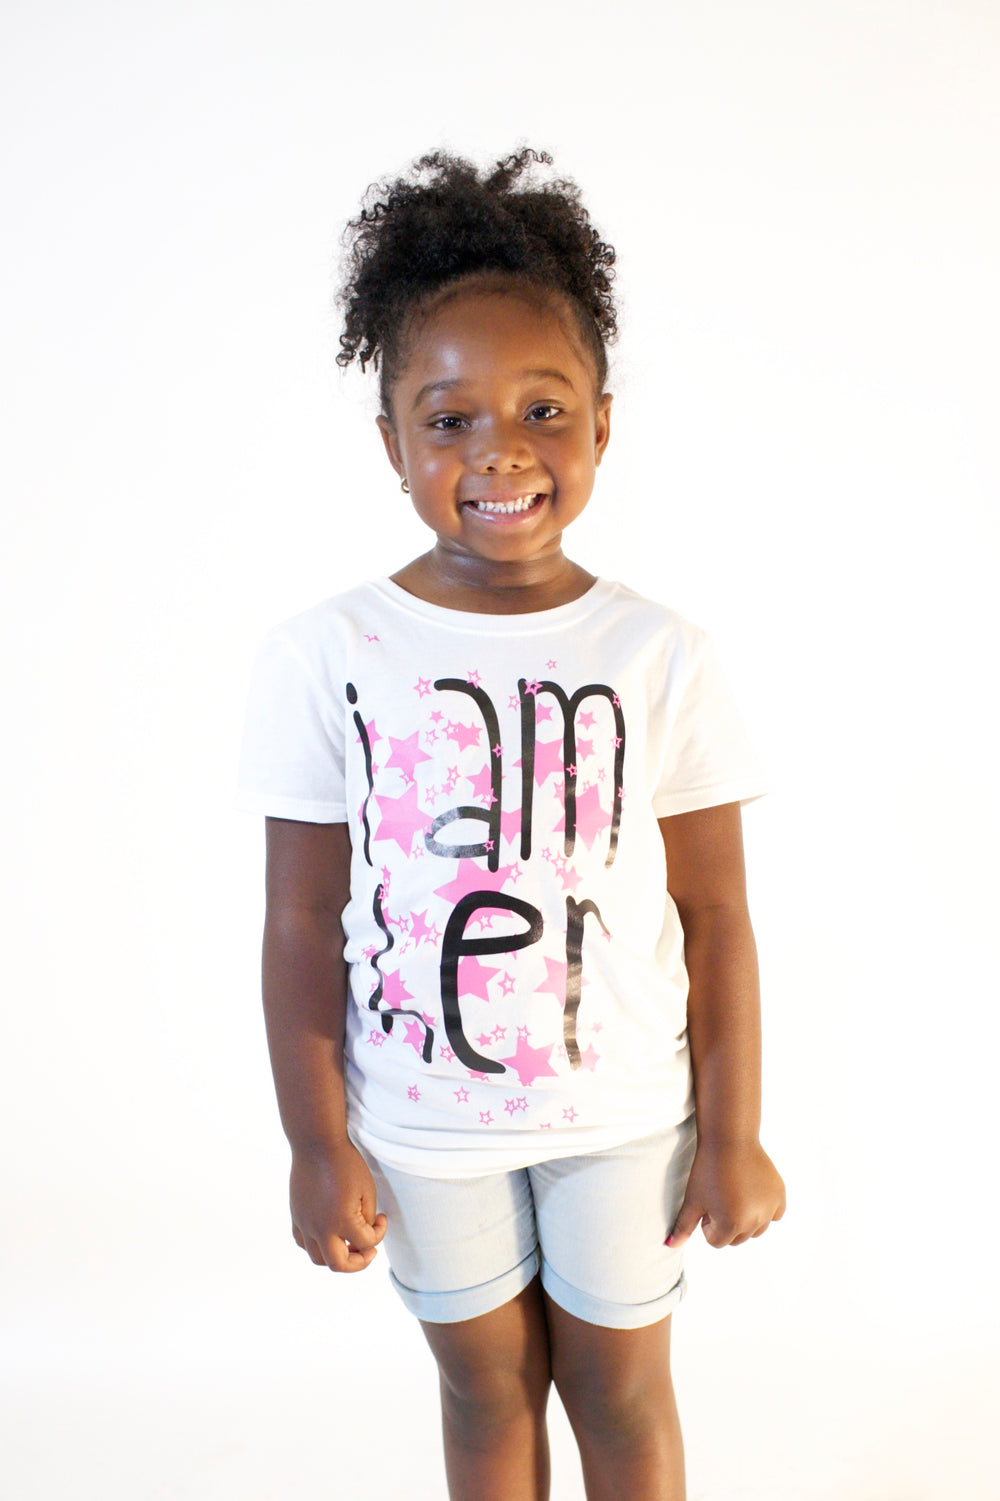 Girl wearing white graphic tee for girls with saying, I AM HER. Girls tees designed for her because it is never too early or too late for her to know her value and worth I